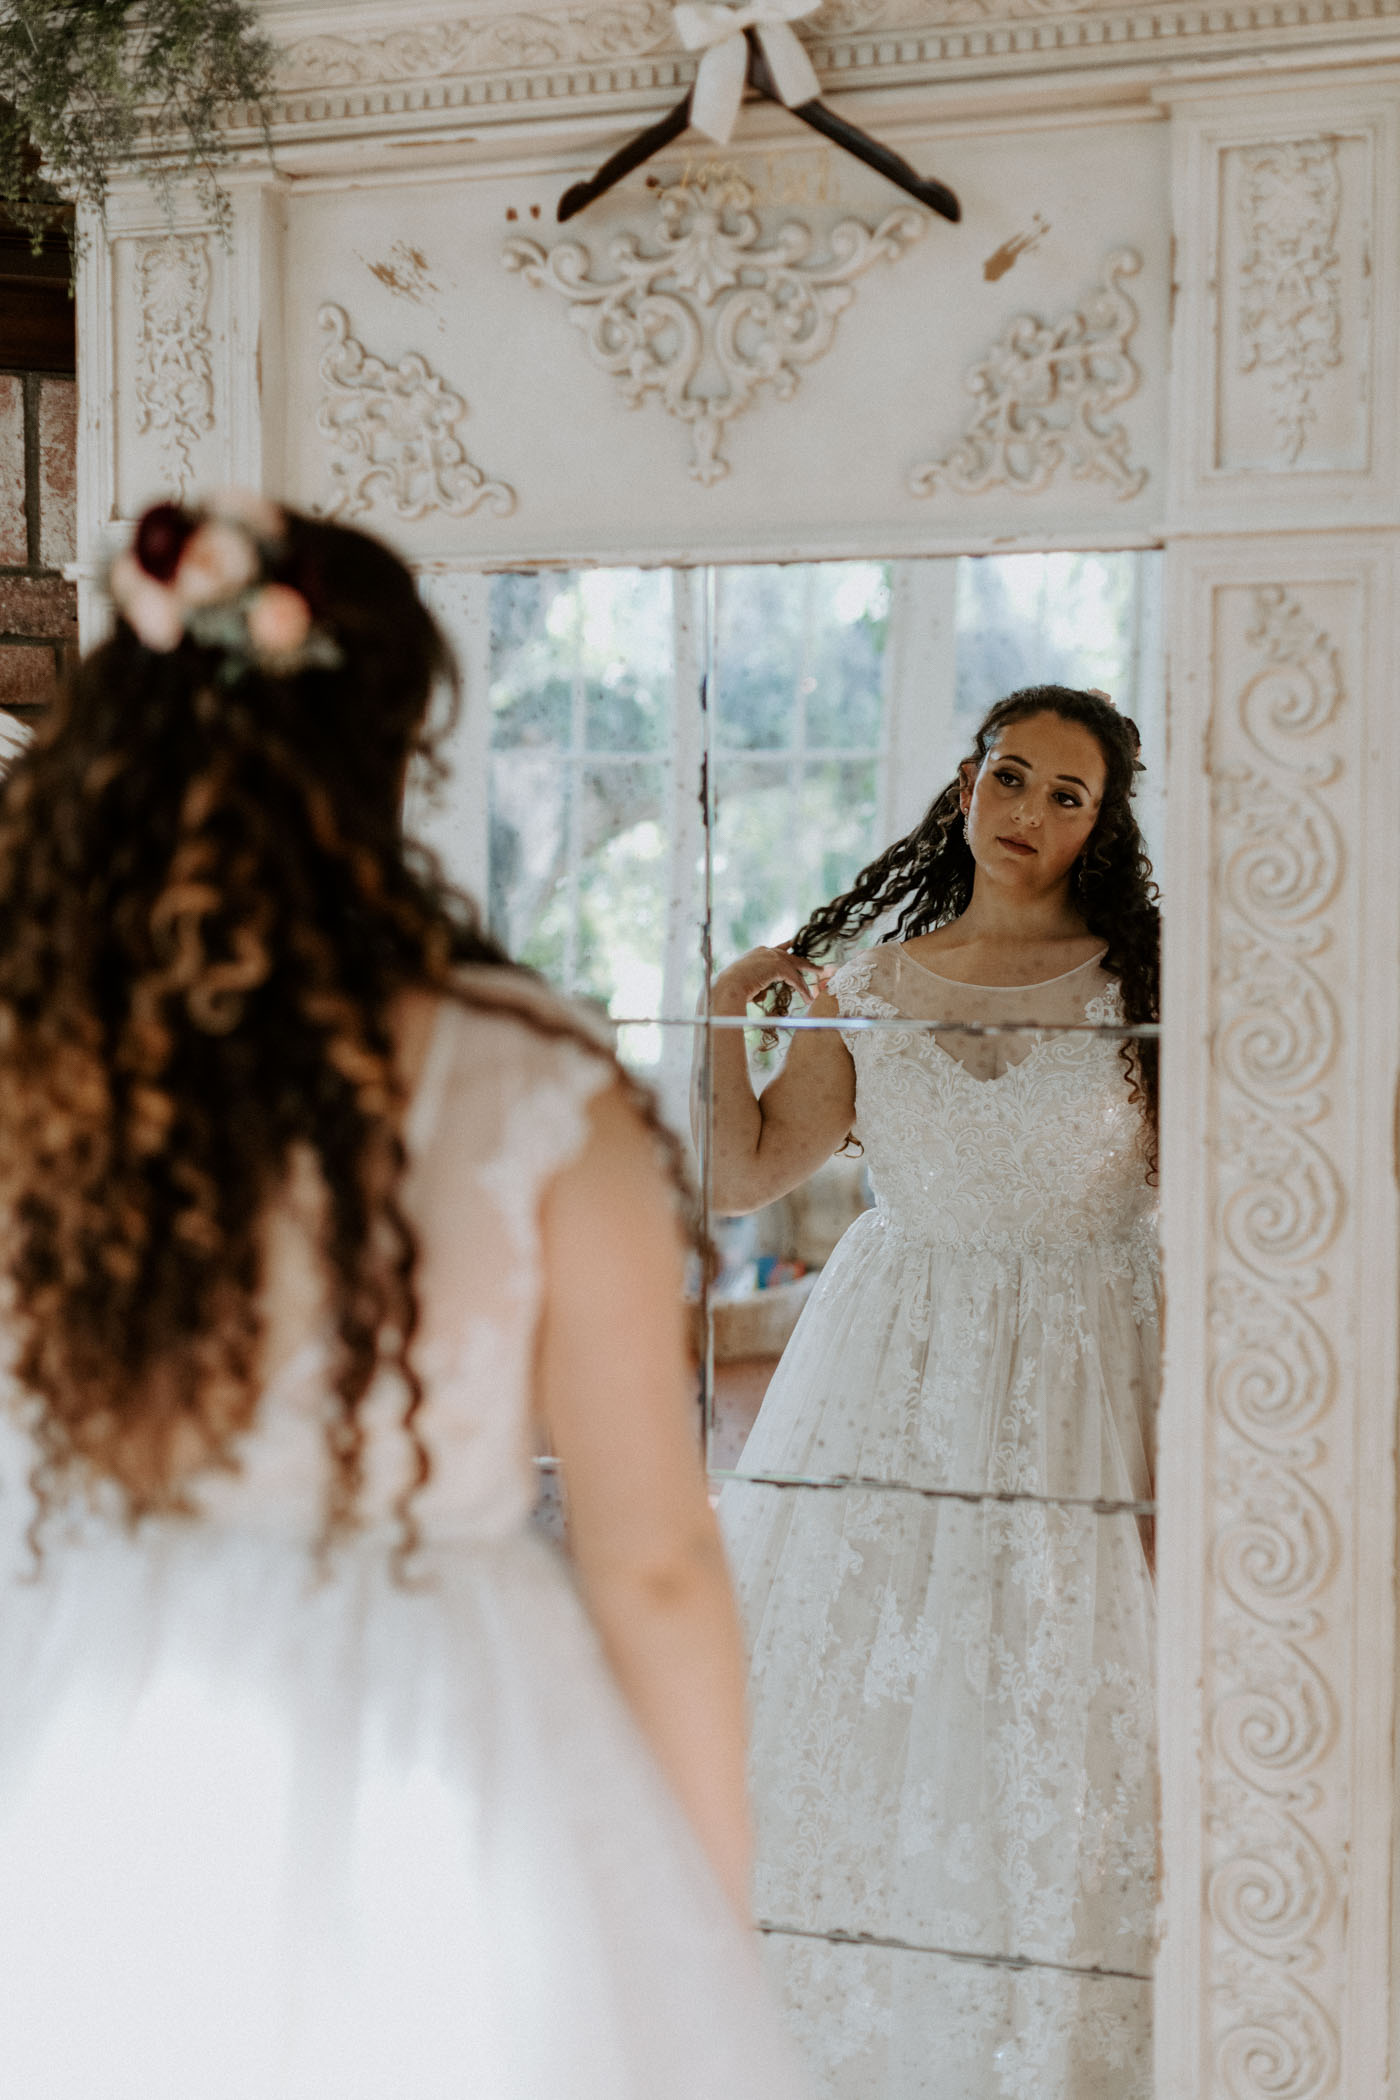 Bride looking in the mirror before her wedding begins